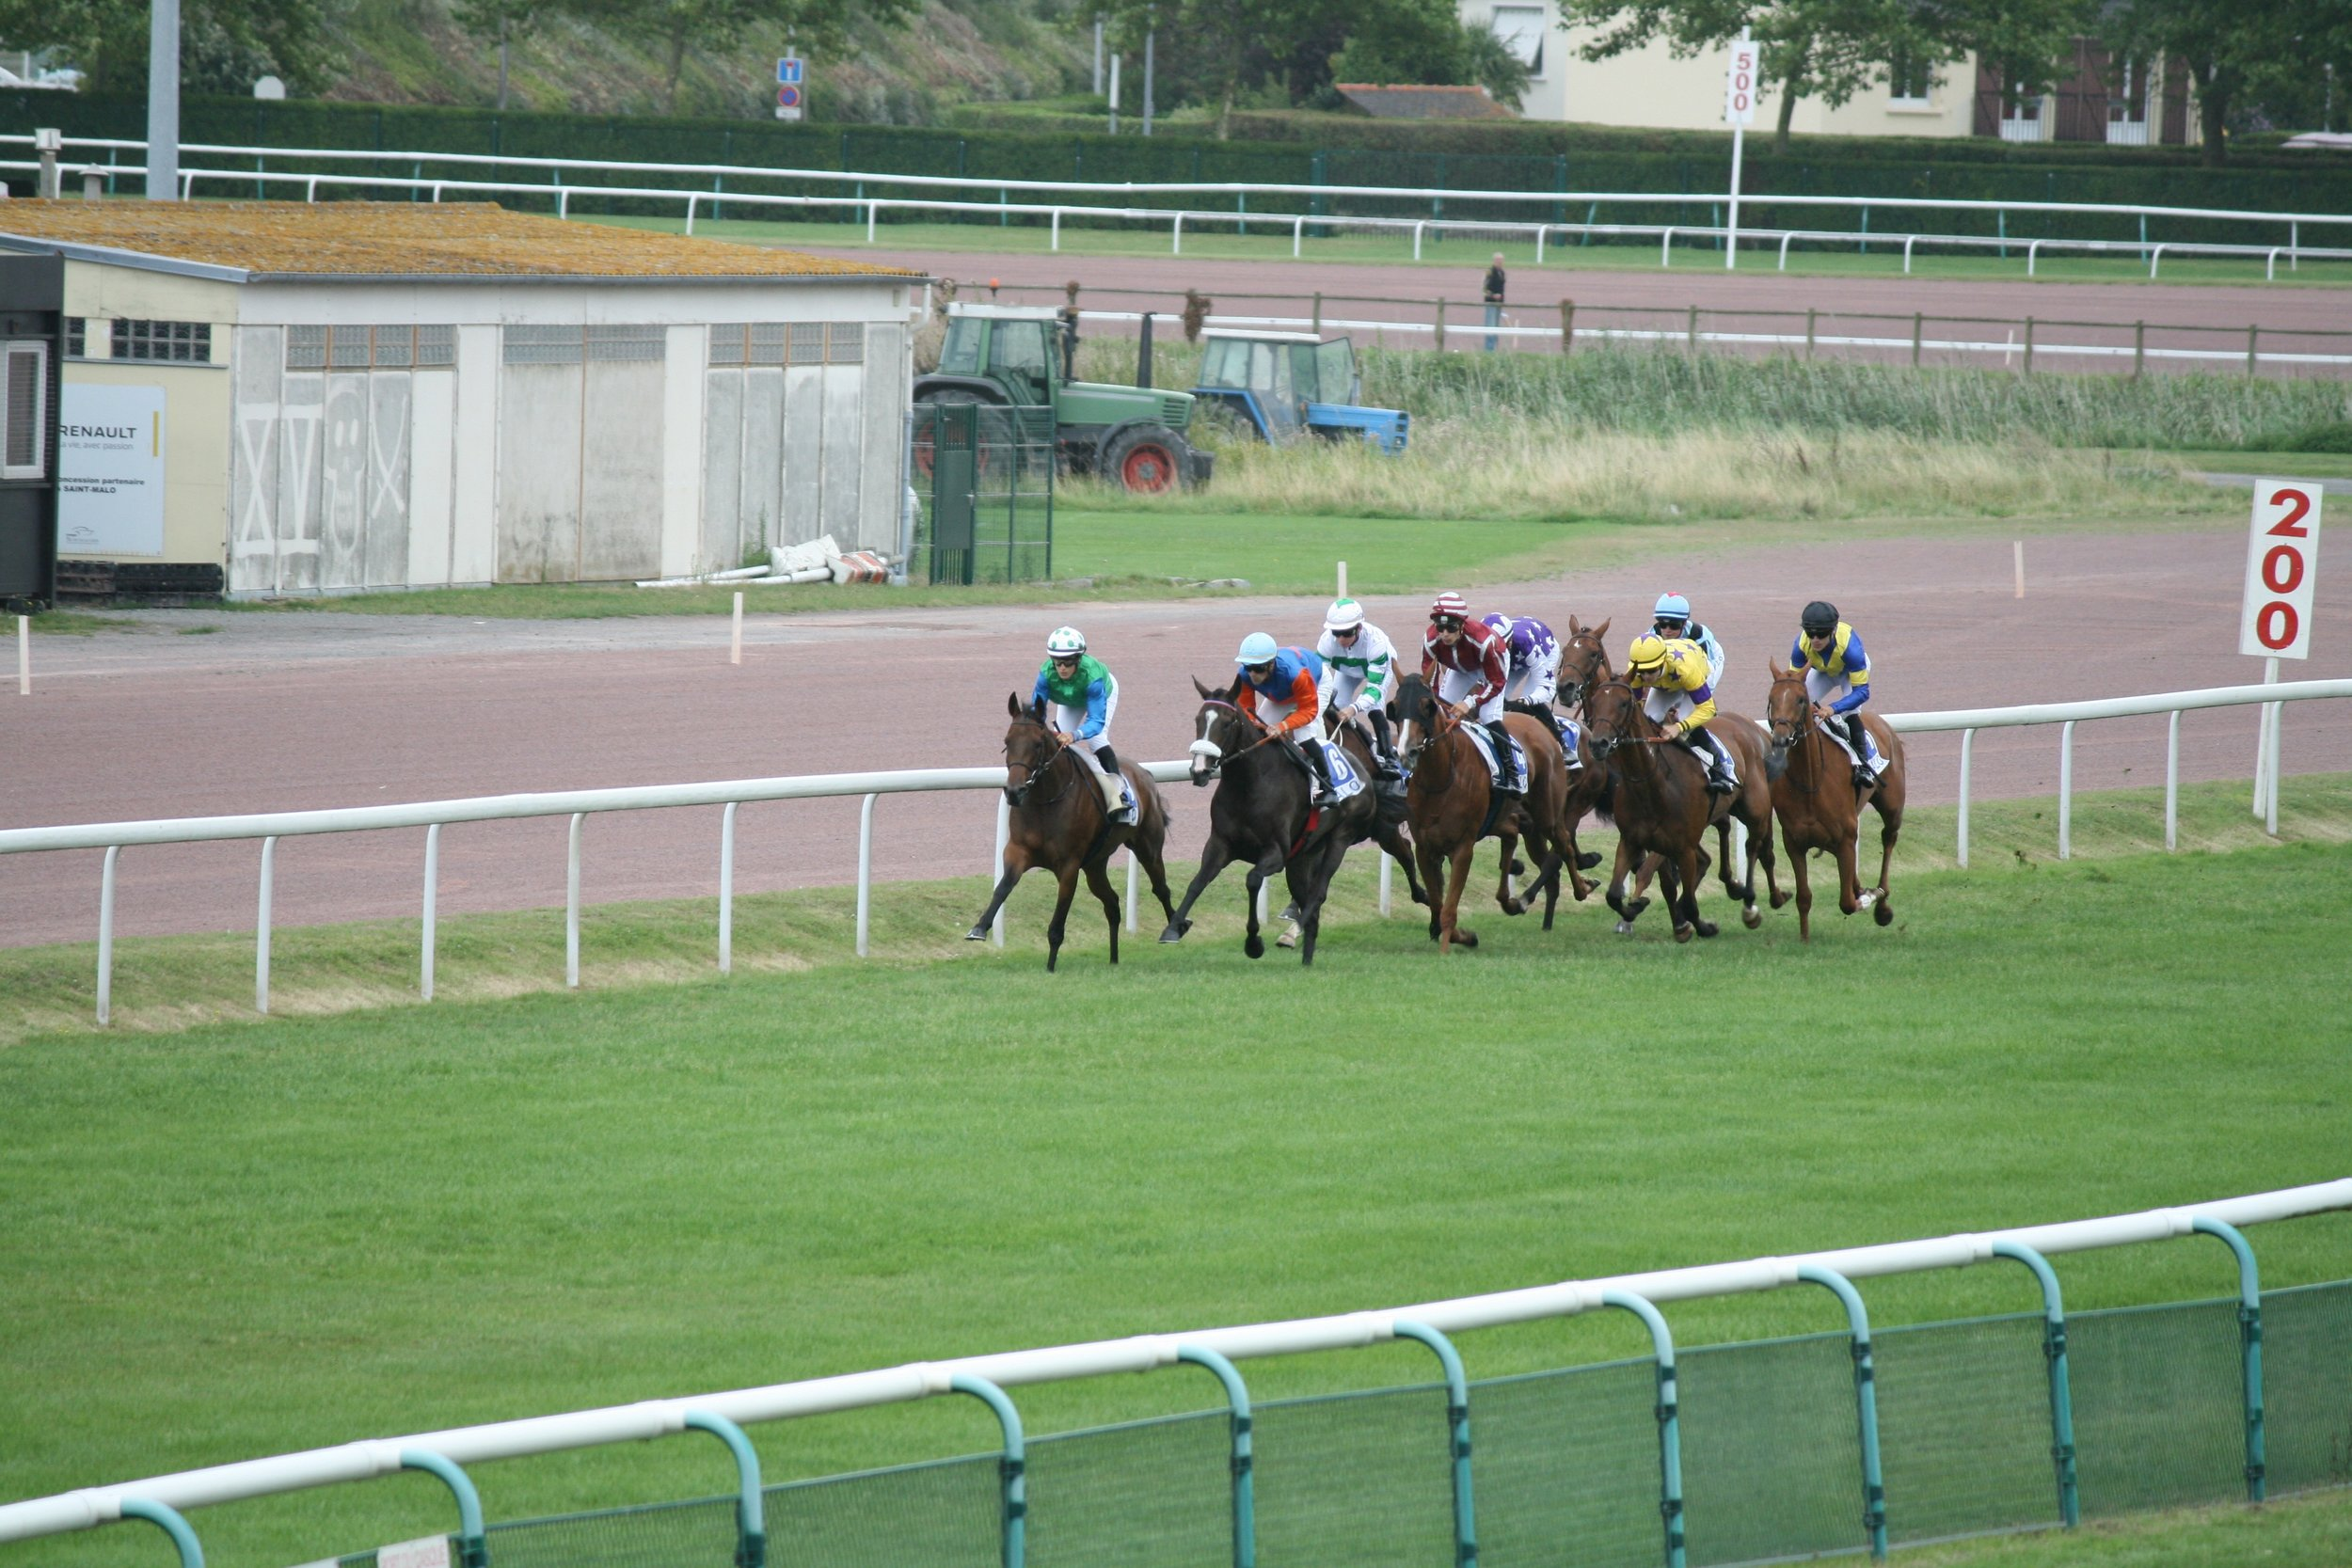 Cap Verite   Arqana 2014 Breeze-Up purchase, broke her maiden nicely at St Malo.